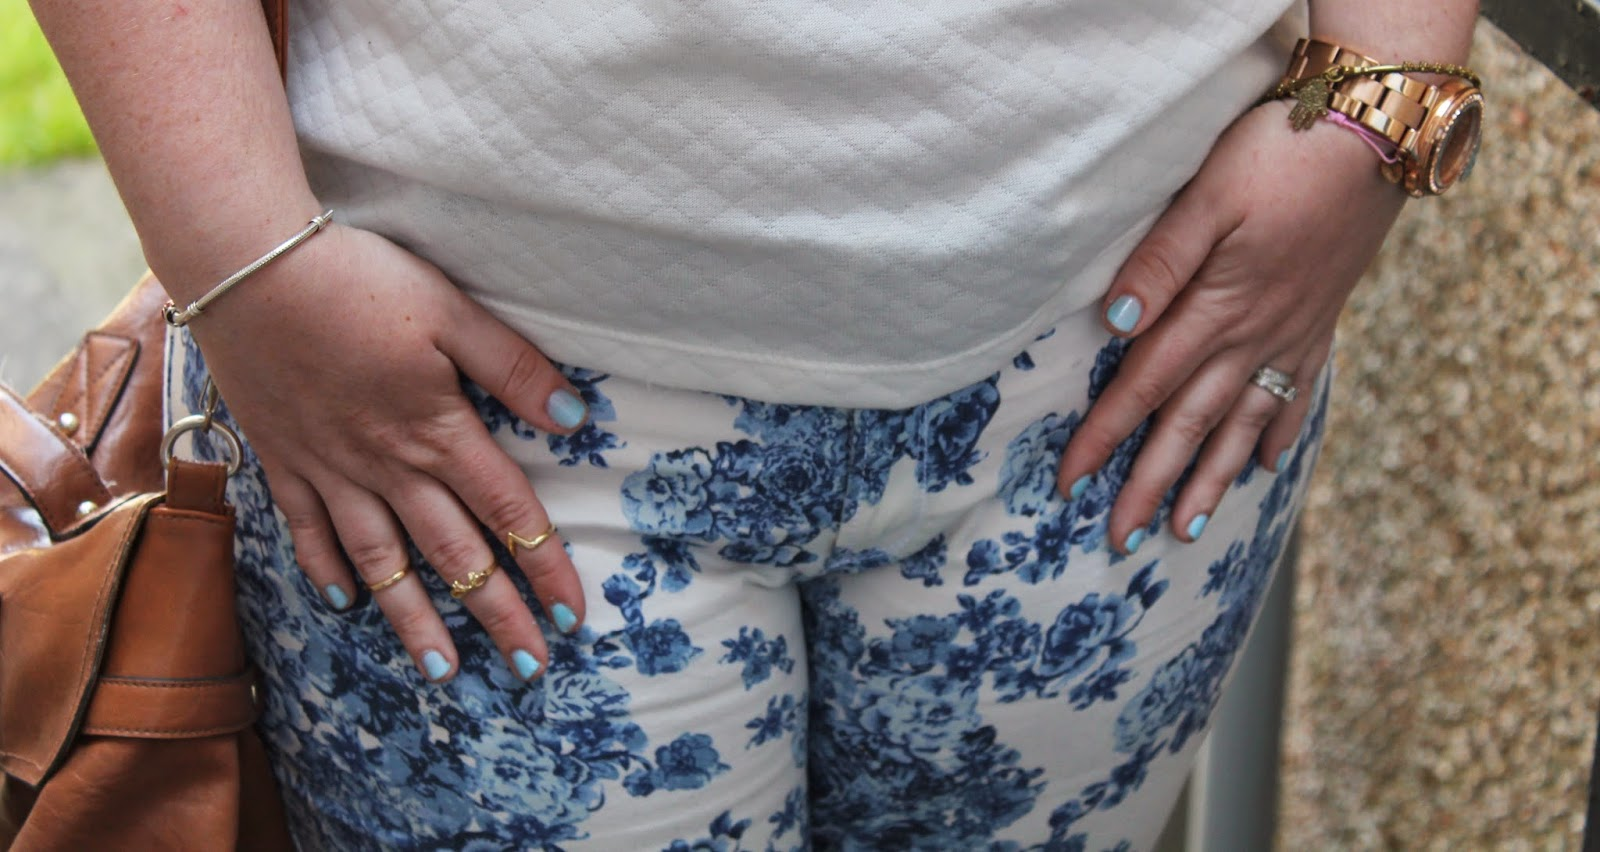 girl wears white jeans with blue floral pattern & knuckle rings